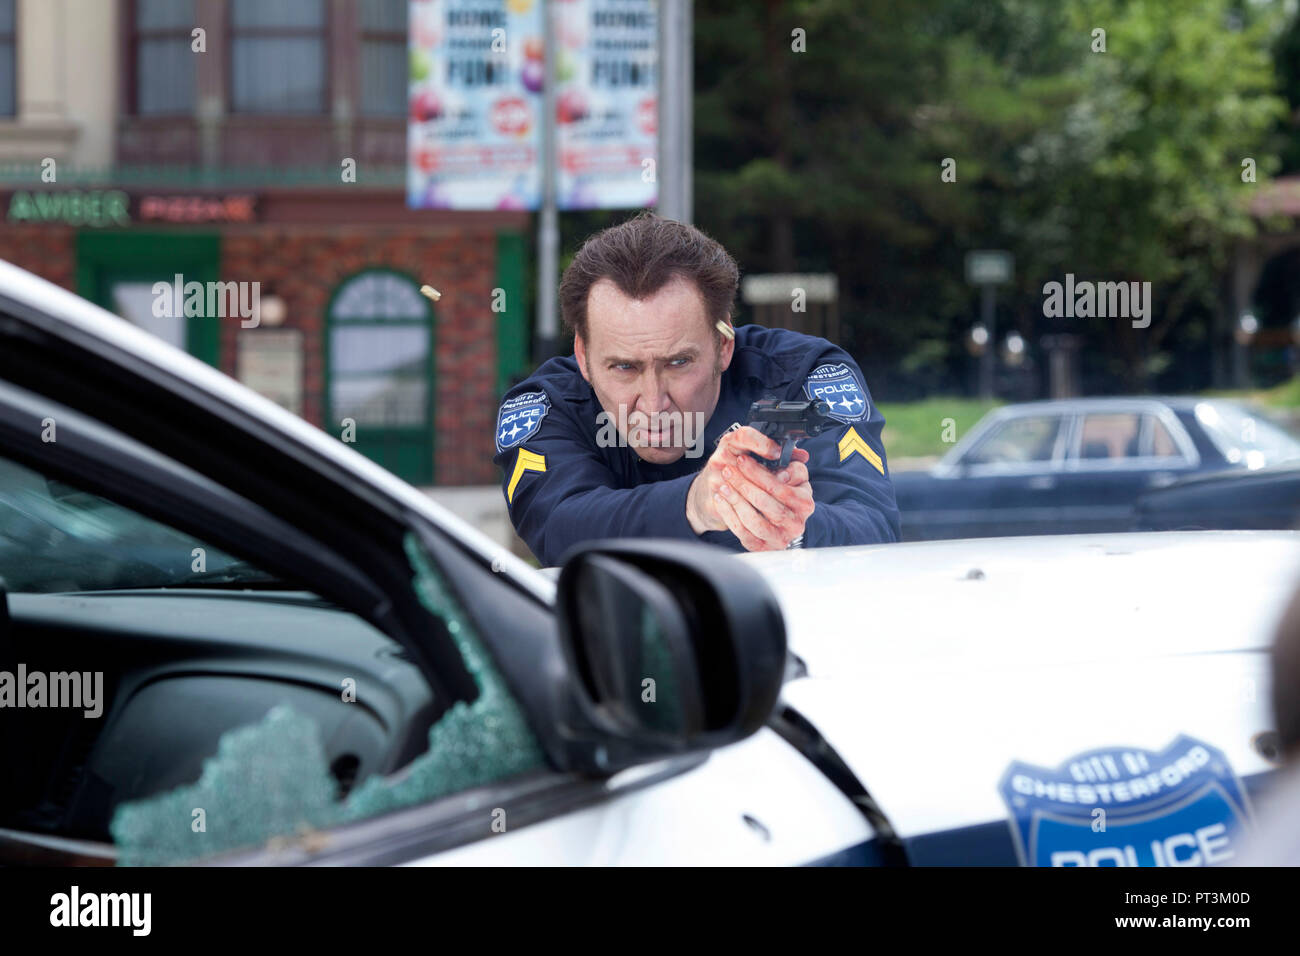 Prod DB © Elena Nenkova - Millennium Films - 211 Productions - Nu Image Bulgaria / DR 211 de York Alec Shackleton 2018 USA Nicolas Cage. action; polic Stock Photo